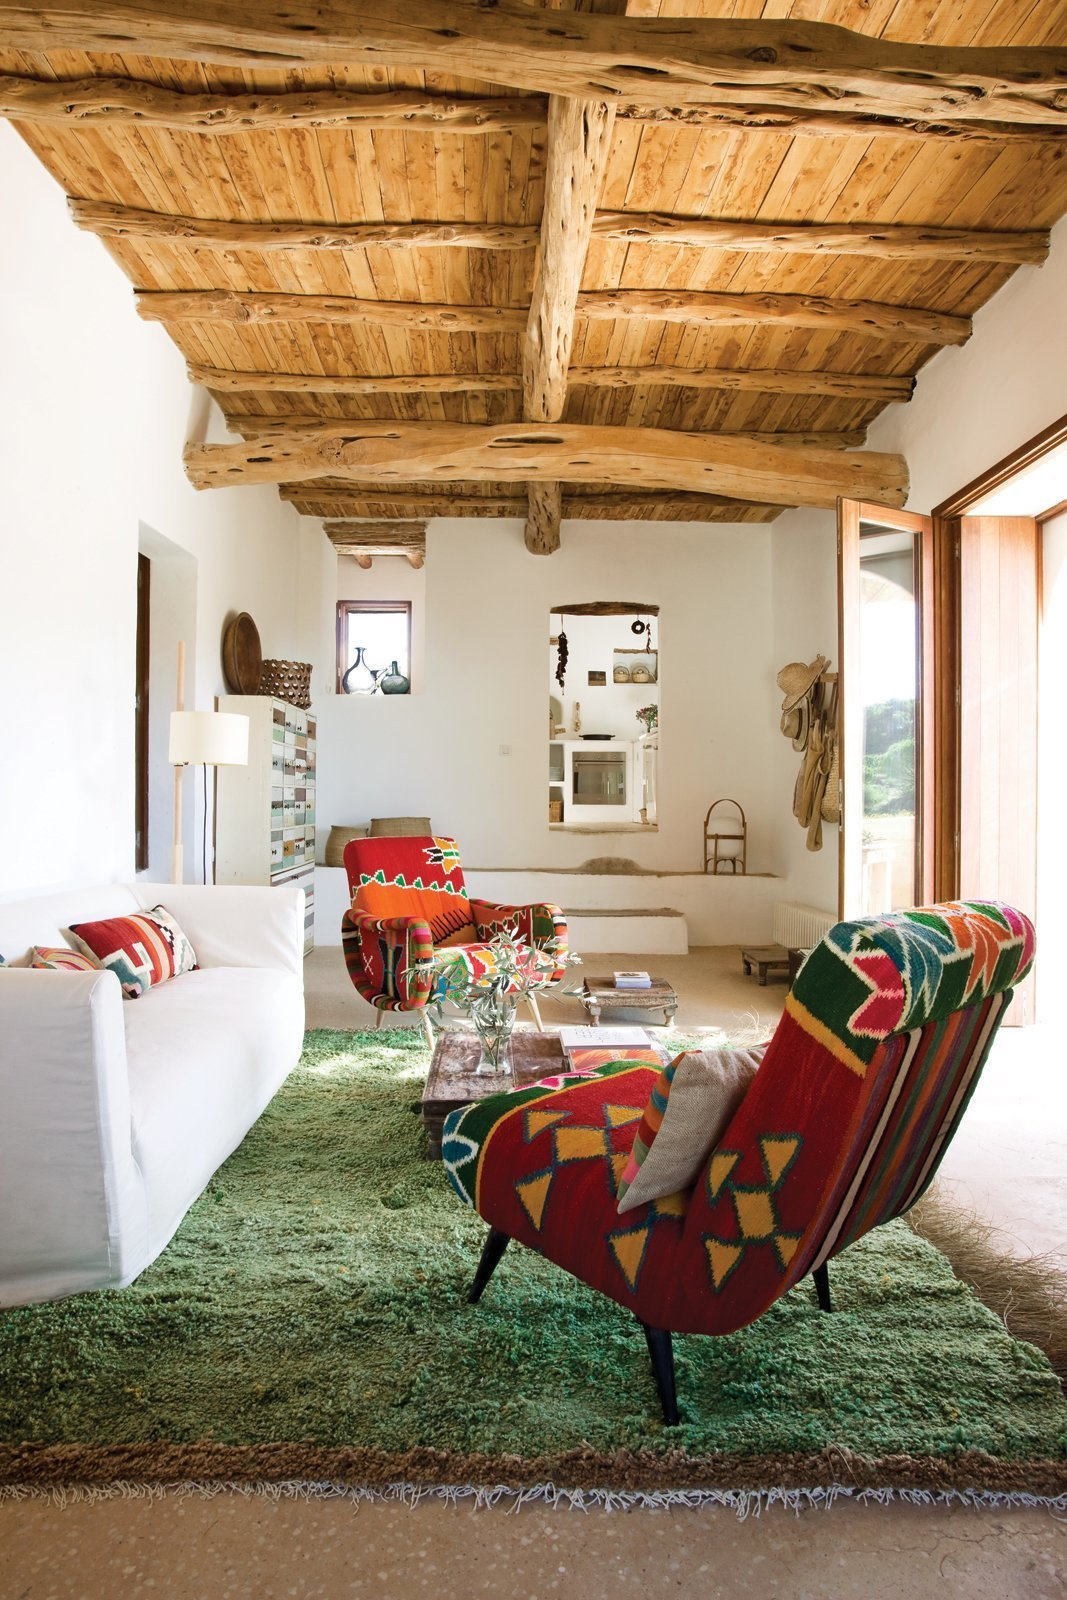 Living Room, Rug Floor, Chair, Sofa, Coffee Tables, Floor Lighting, Lamps, and Storage Rug designer Nani Marquina and photographer Albert Font created their home in a peaceful corner of the Spanish island of Ibiza. In their living room is a pair of kilim-covered chairs by Philippe Xerri, a chest of drawers by Piet Hein Eek, and a handmade Tunisian rug that provides bursts of color amidst the overall color scheme of white, ecru, and cream.  Best Photos from 12 Mediterranean Homes That Are the Antidote to Mid-Winter Blues